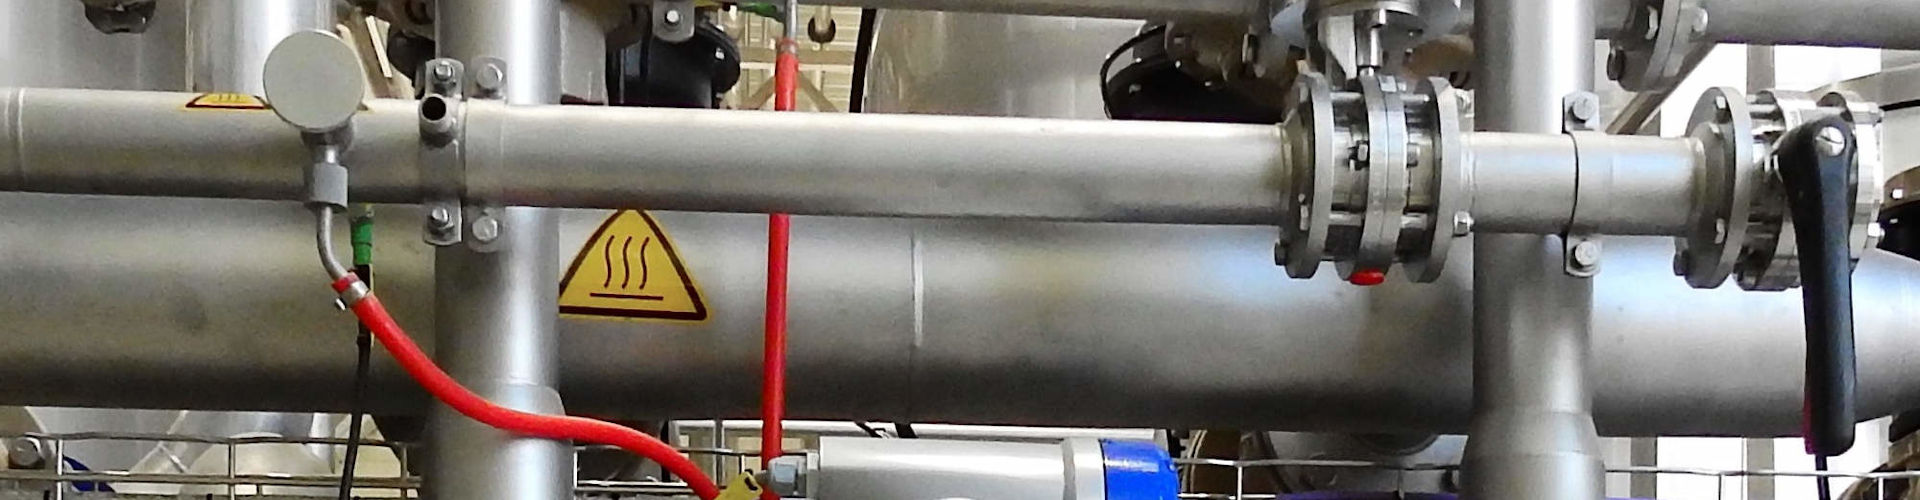 Closed System Hot / Cold Water Treatment Service Company in London